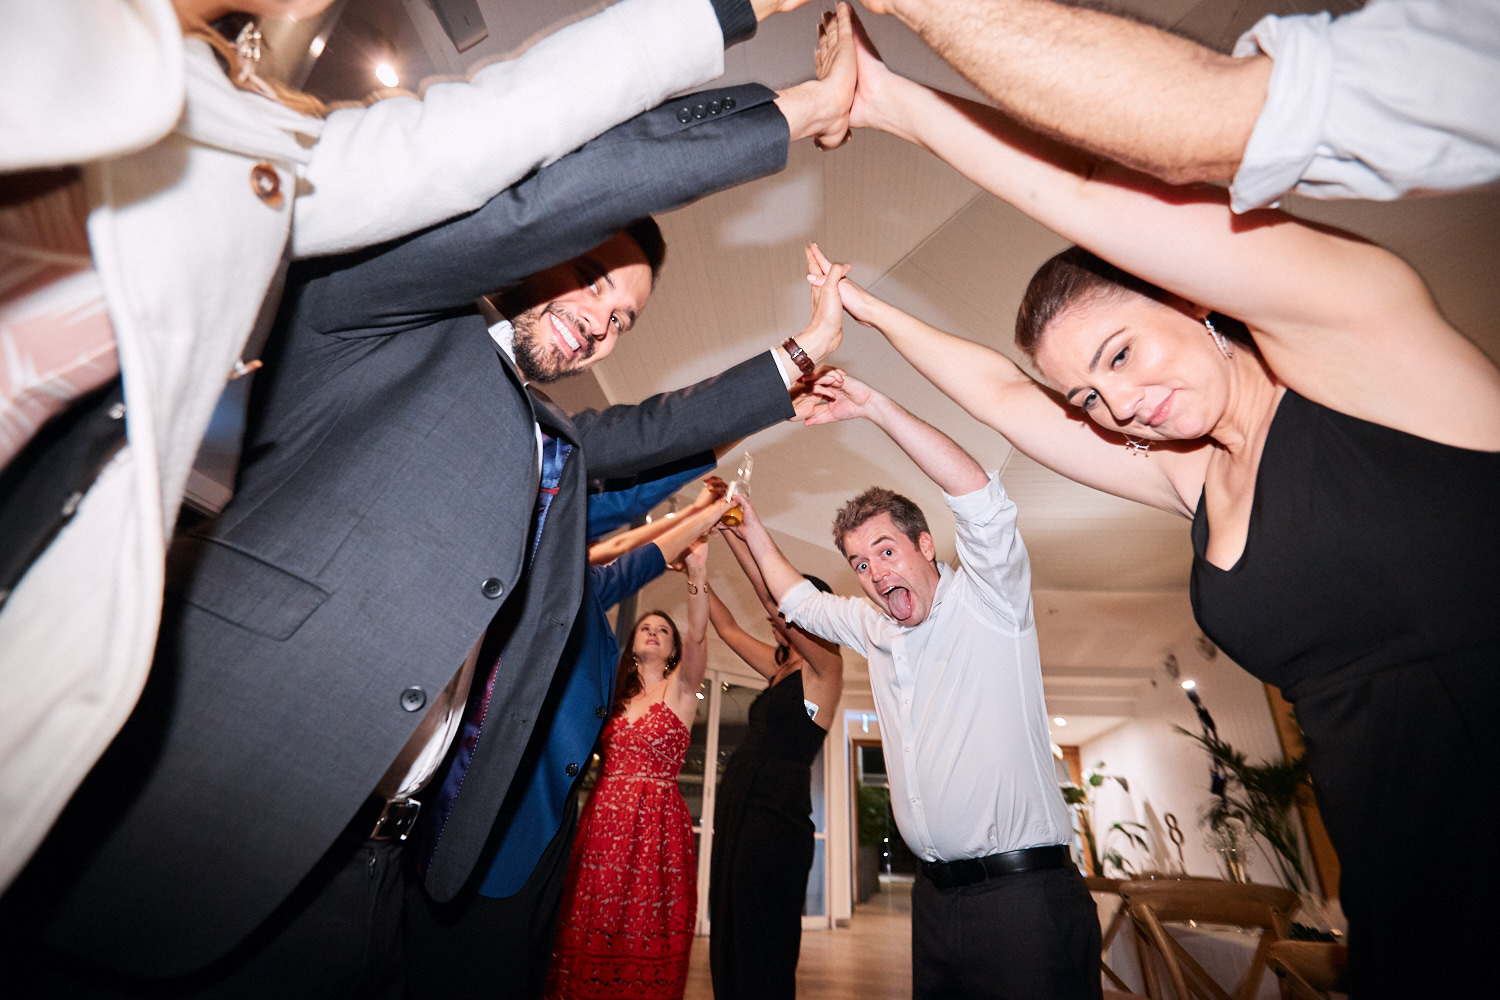 Guests make exit tunnel at Centennial Homestead wedding